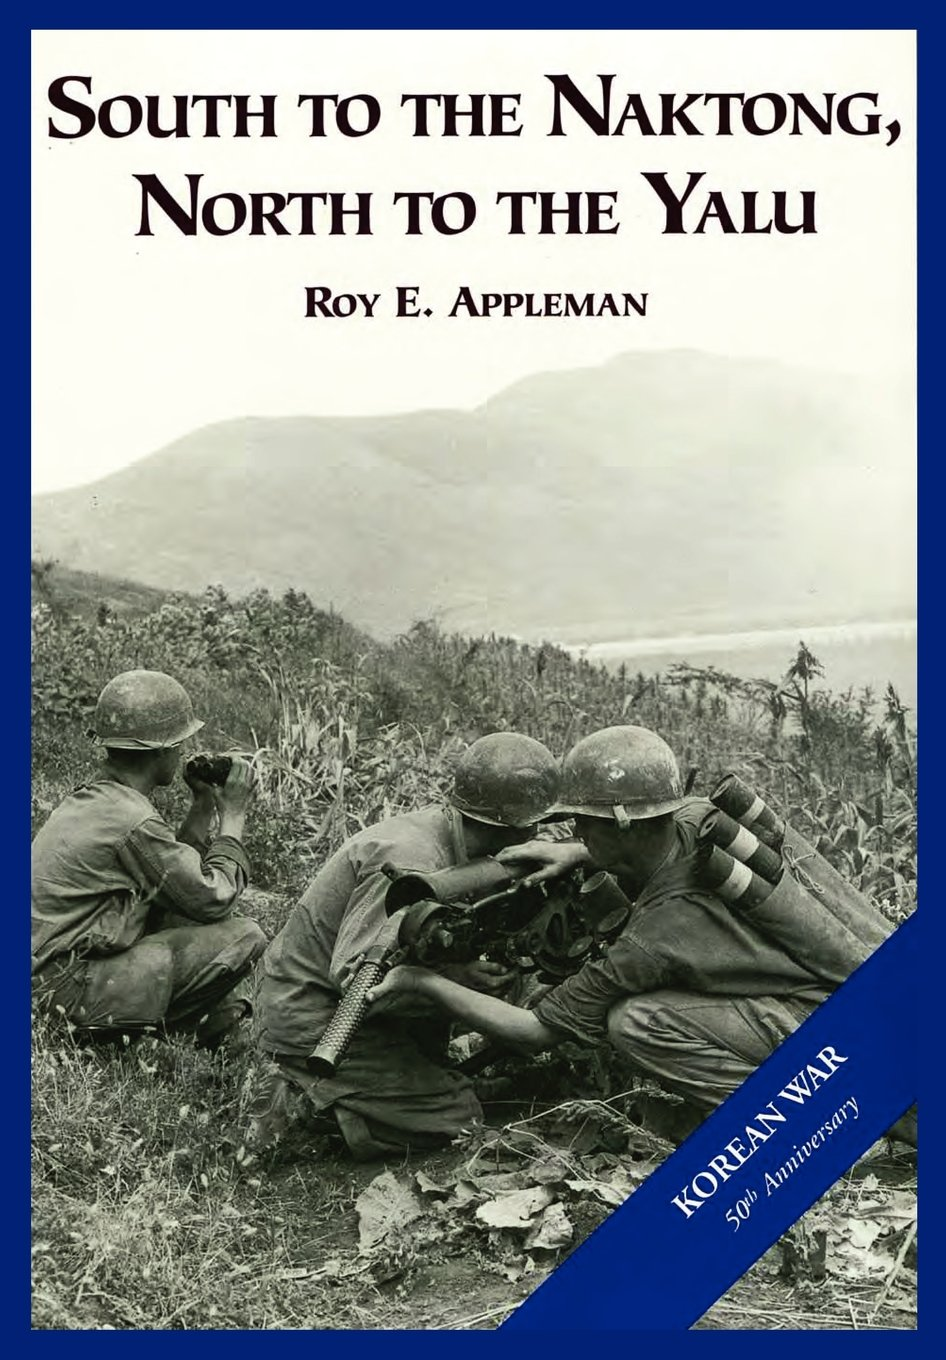 The U.S. Army and the Korean War: South to the Naktong, North to the Yalu